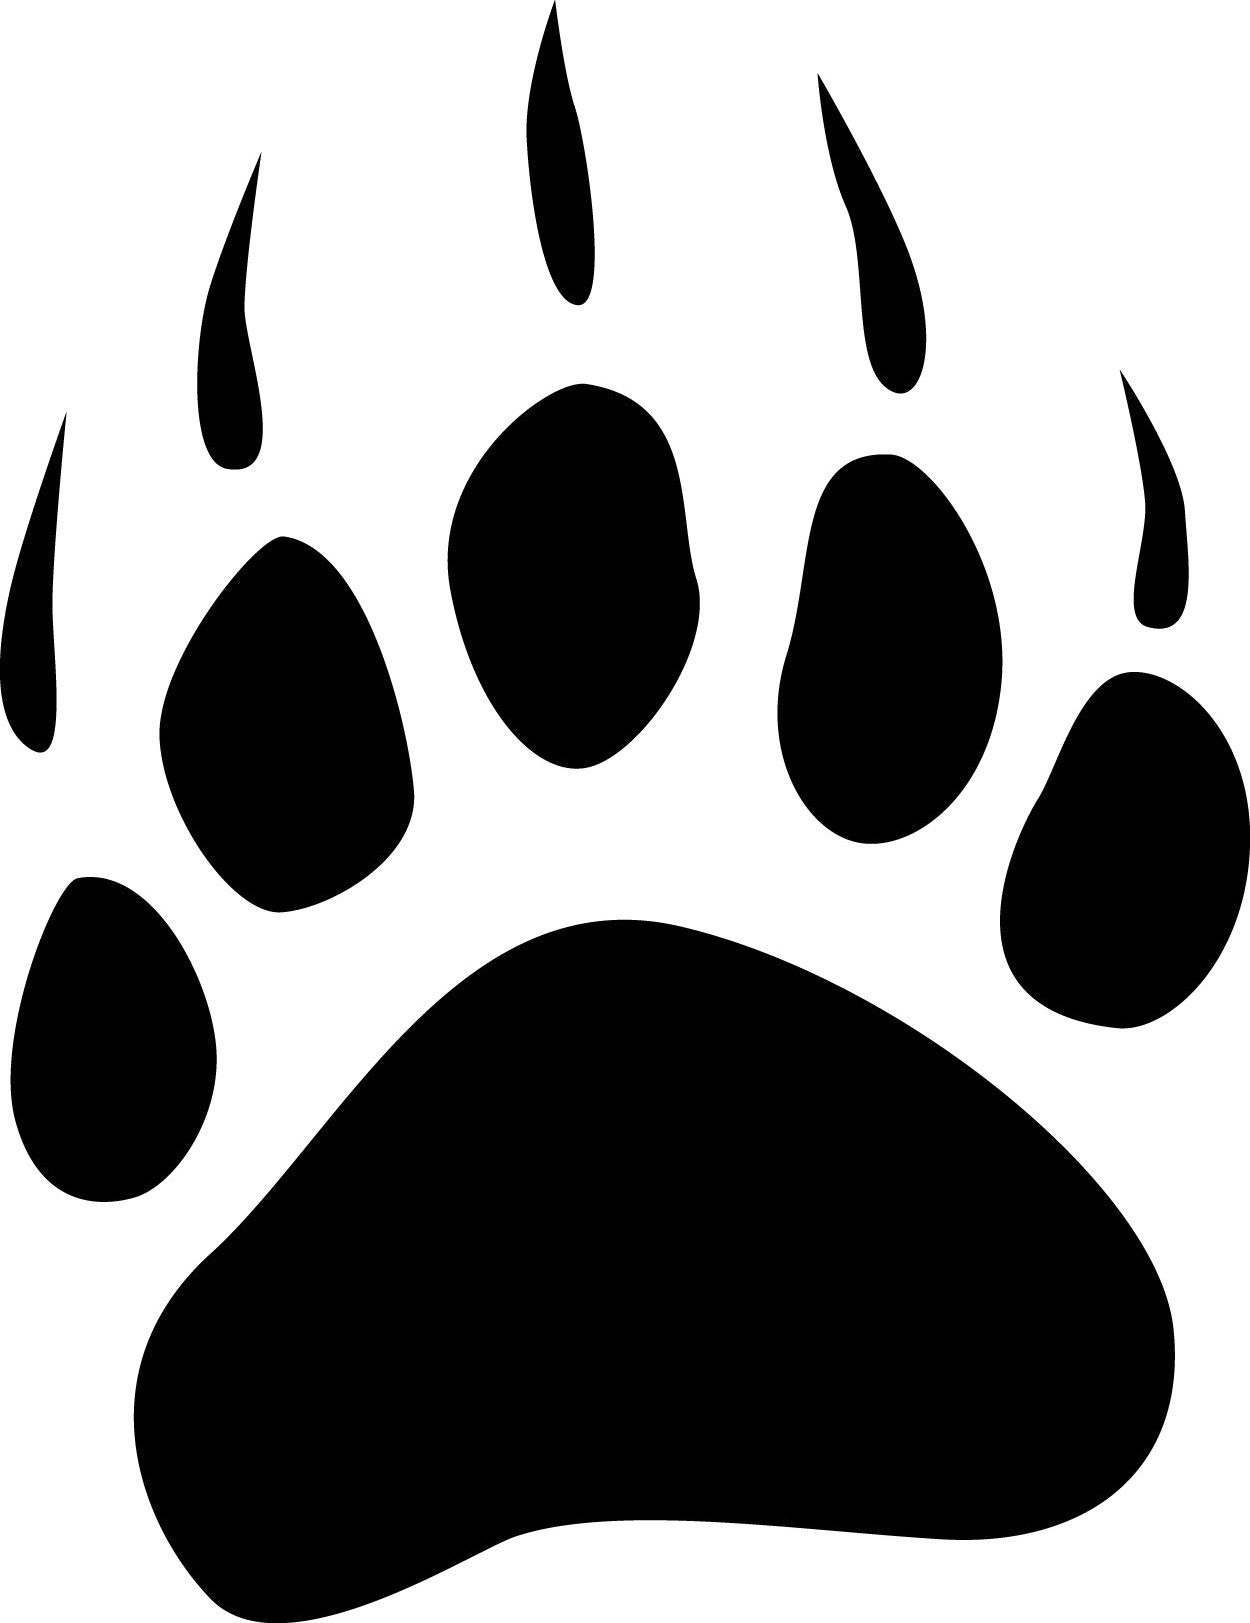 Bear black and white clipart bear paw svg free download Bearcat Paw Clip Art | bear paw tracks free cliparts that you can ... svg free download